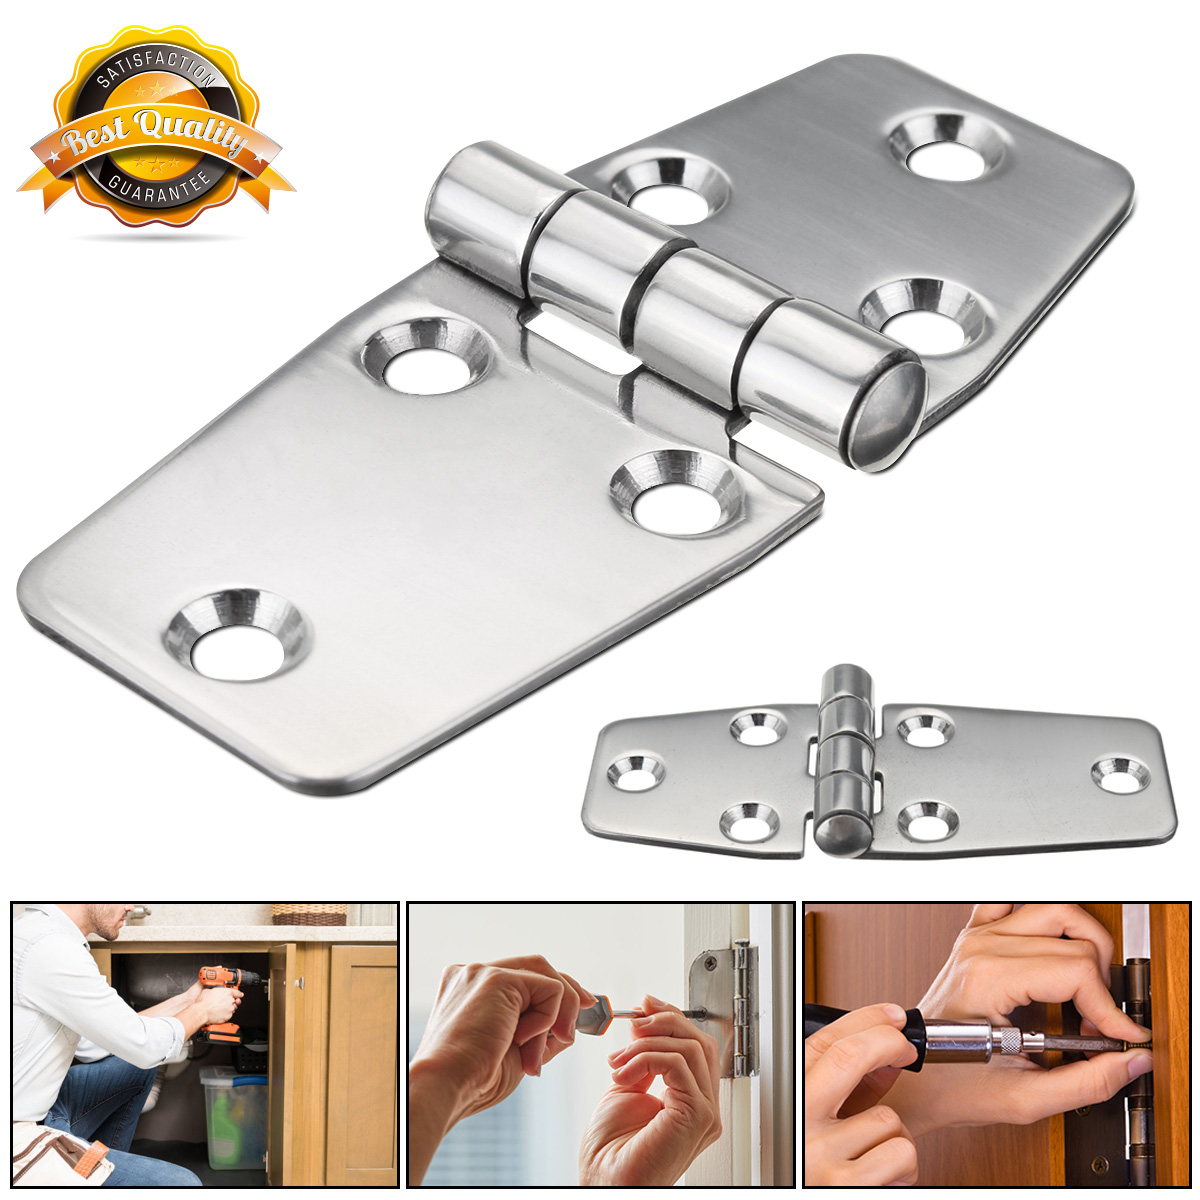 1 Pcs 38x97mm Flush Hinges 316 Stainless Steel Polished Silver for Boat Marine Door Compartment Door Hinges1 Pcs 38x97mm Flush Hinges 316 Stainless Steel Polished Silver for Boat Marine Door Compartment Door Hinges